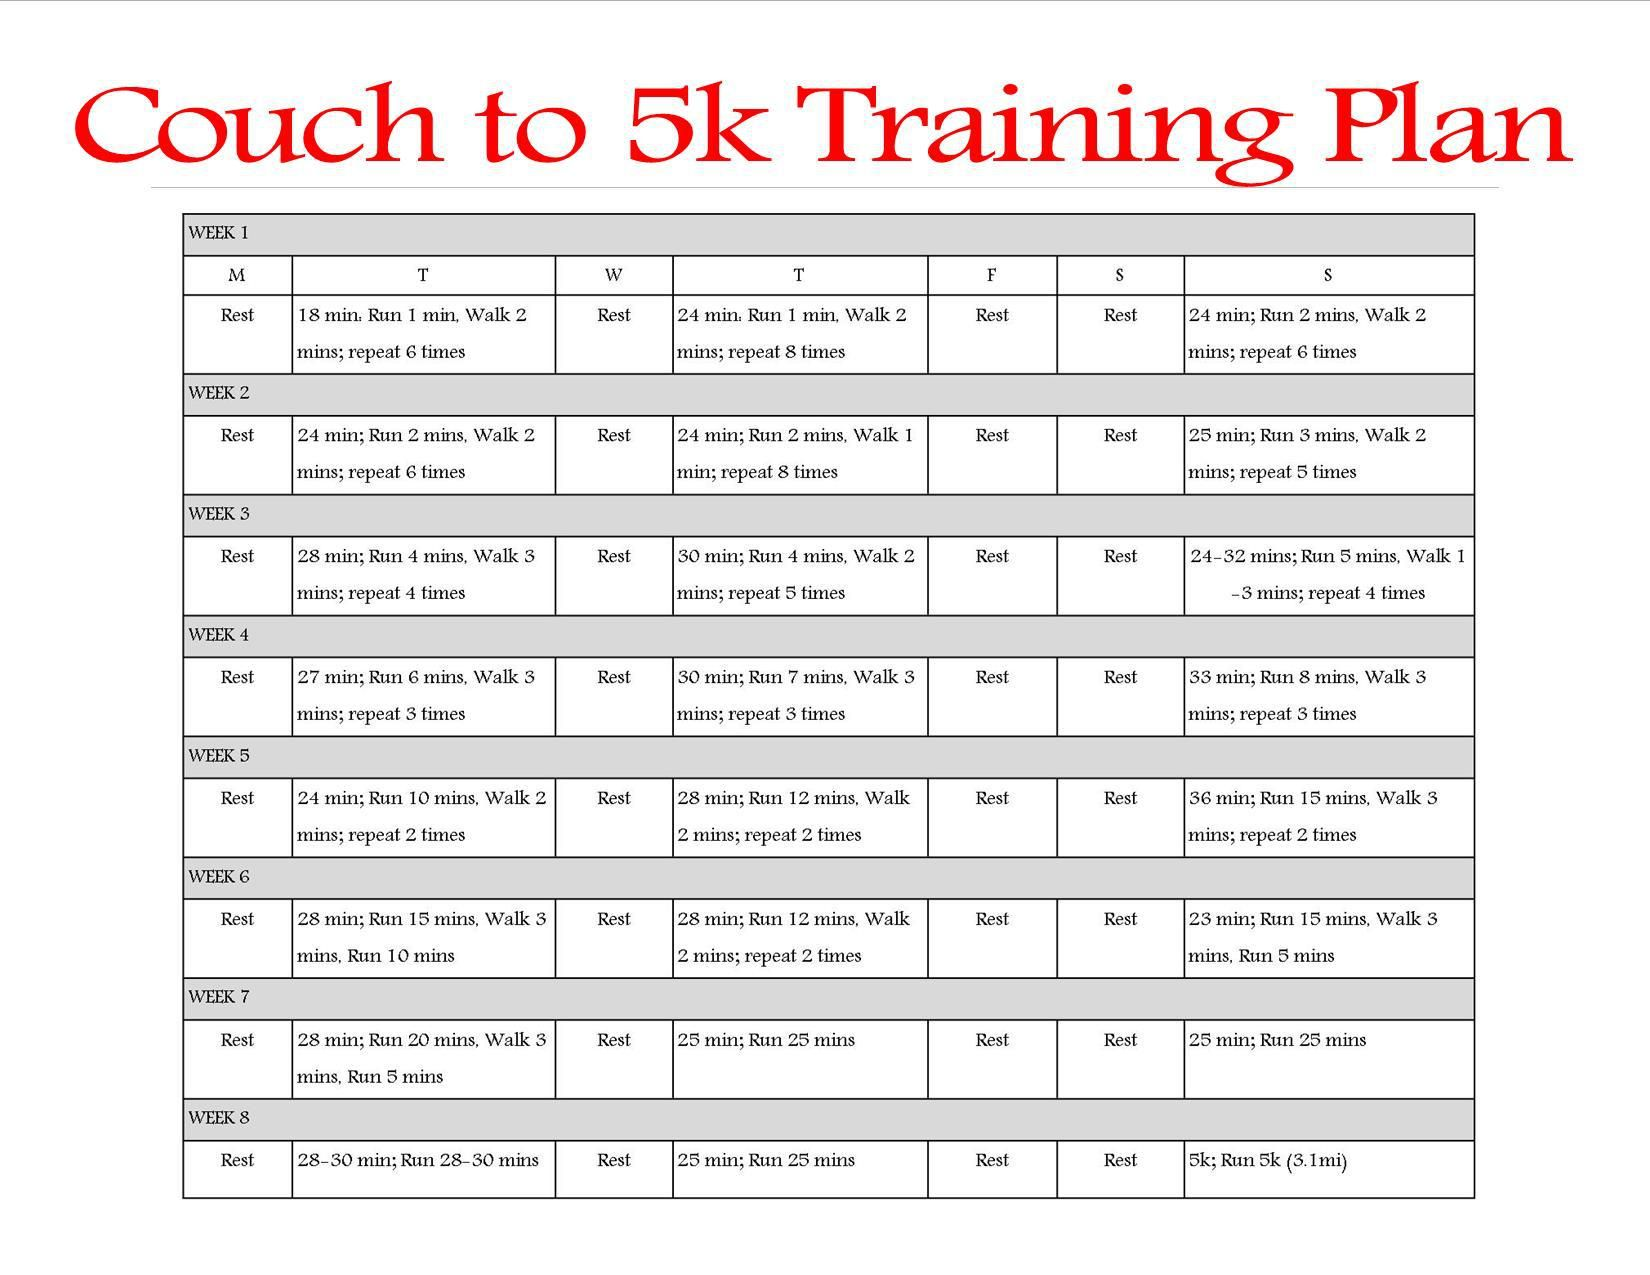 Related image Couch to 5k, Couch to 5k plan, Nerd fitness